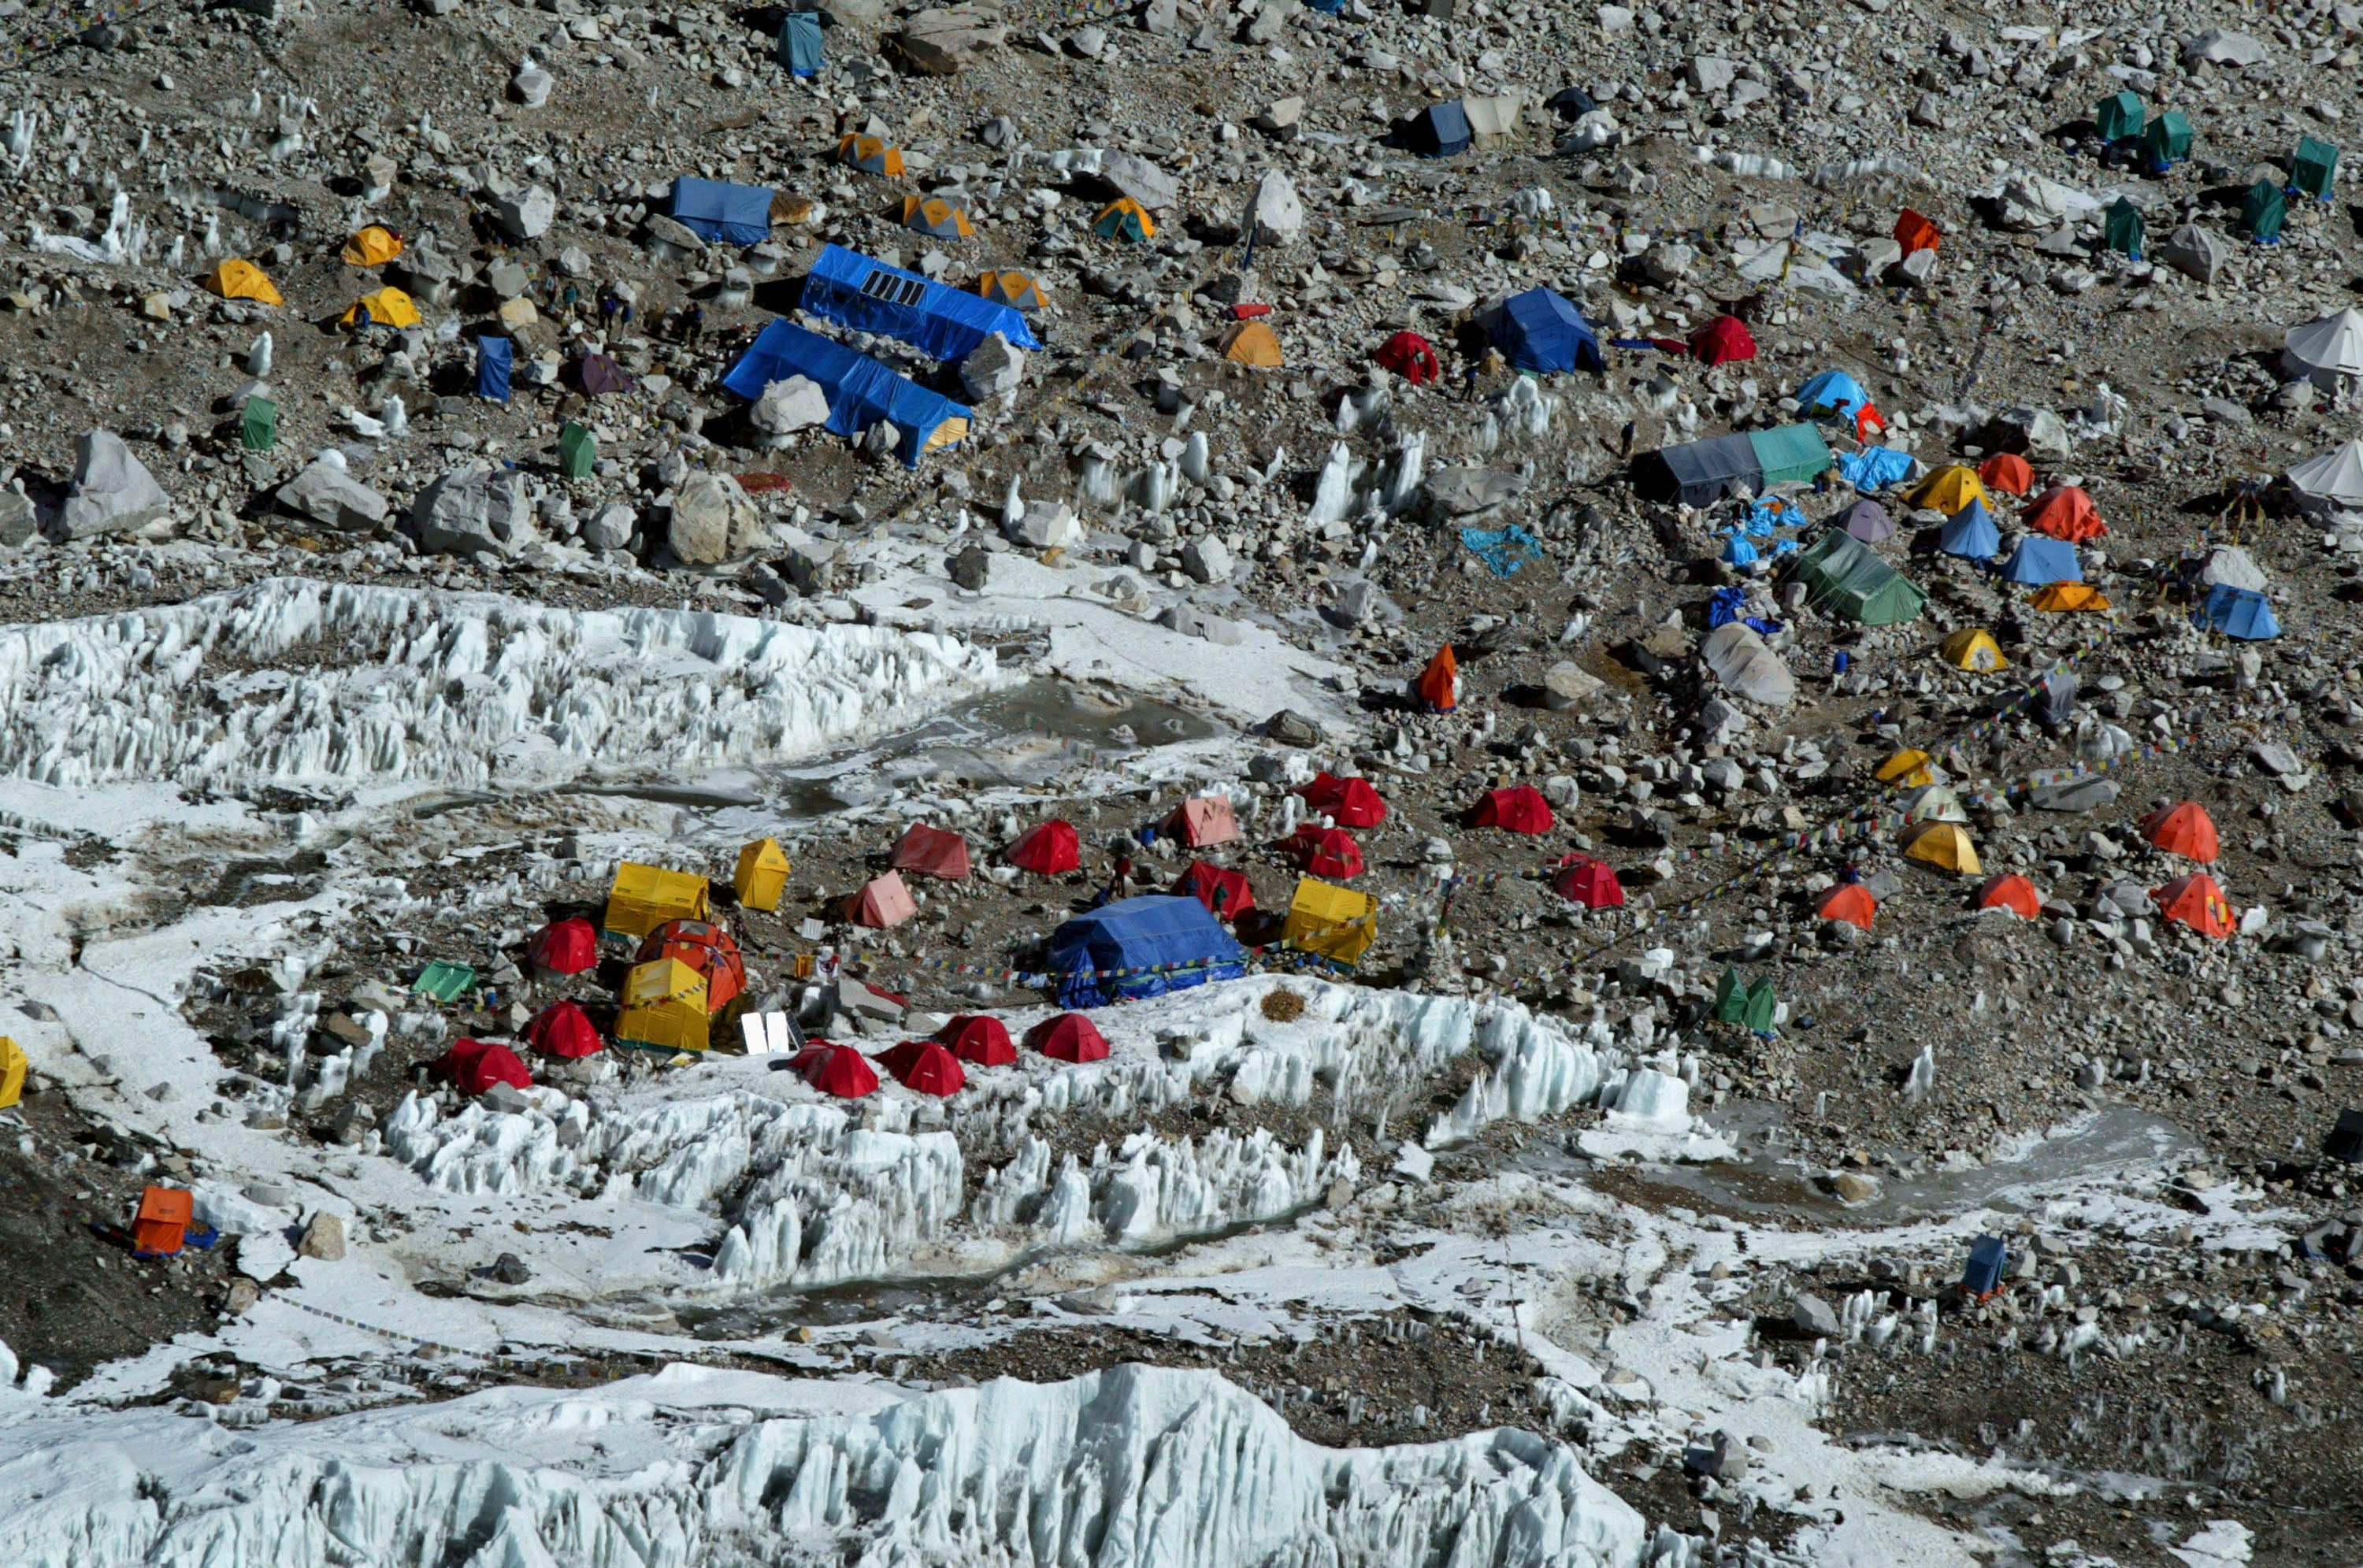 Nepal Will Force Each Everest Climber To Collect 18 Pounds